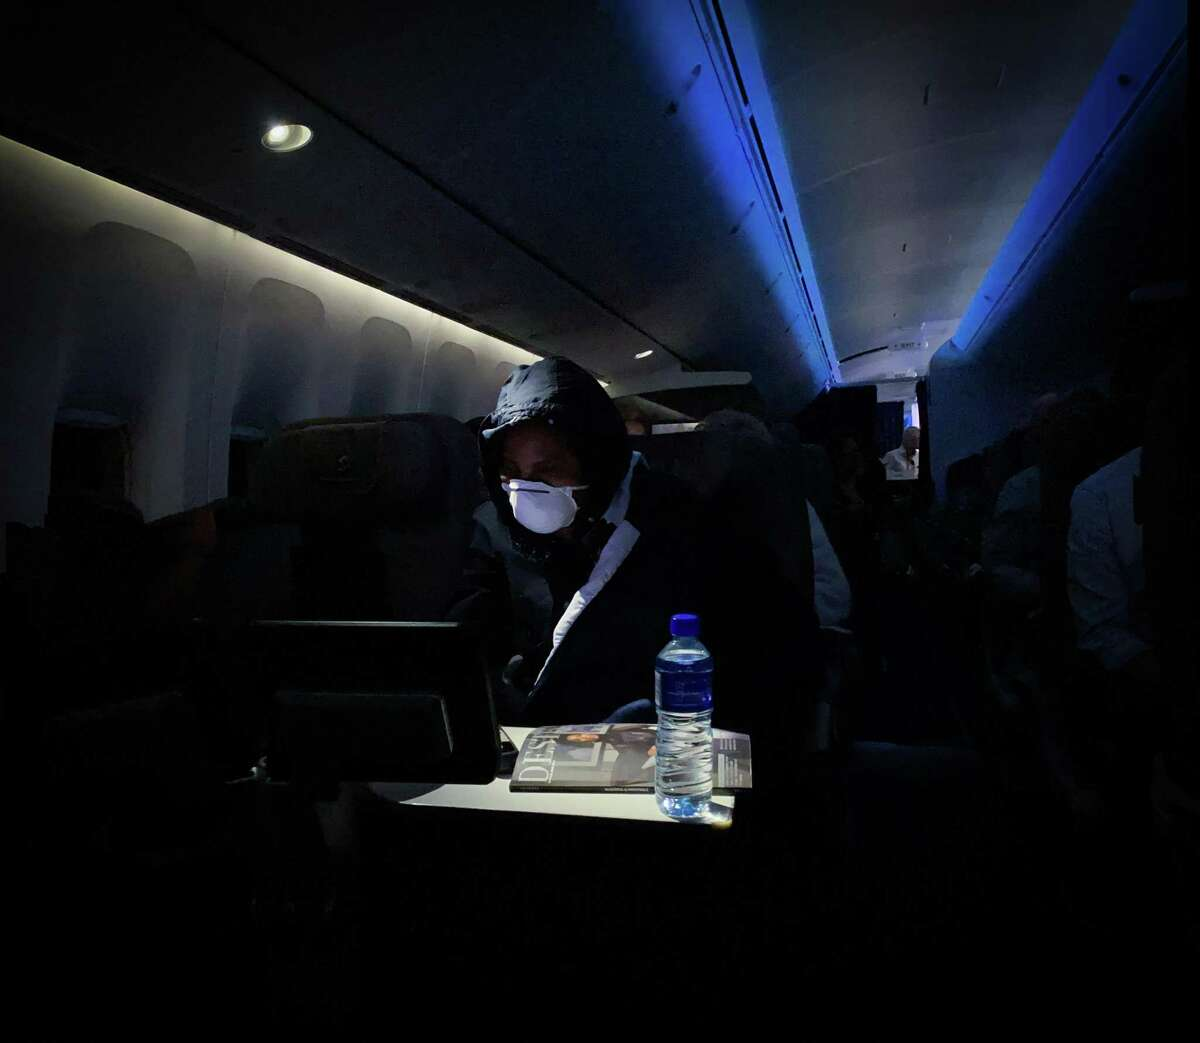 A passenger wears a face mask as a preventive measure during a flight from Johannesburg to Frankfurt on March 17, 2020. A South African businessman said he was diagnosed with the coronavirus days after attending a large party in Westport, where there are now at least 20 confirmed cases of the illness.